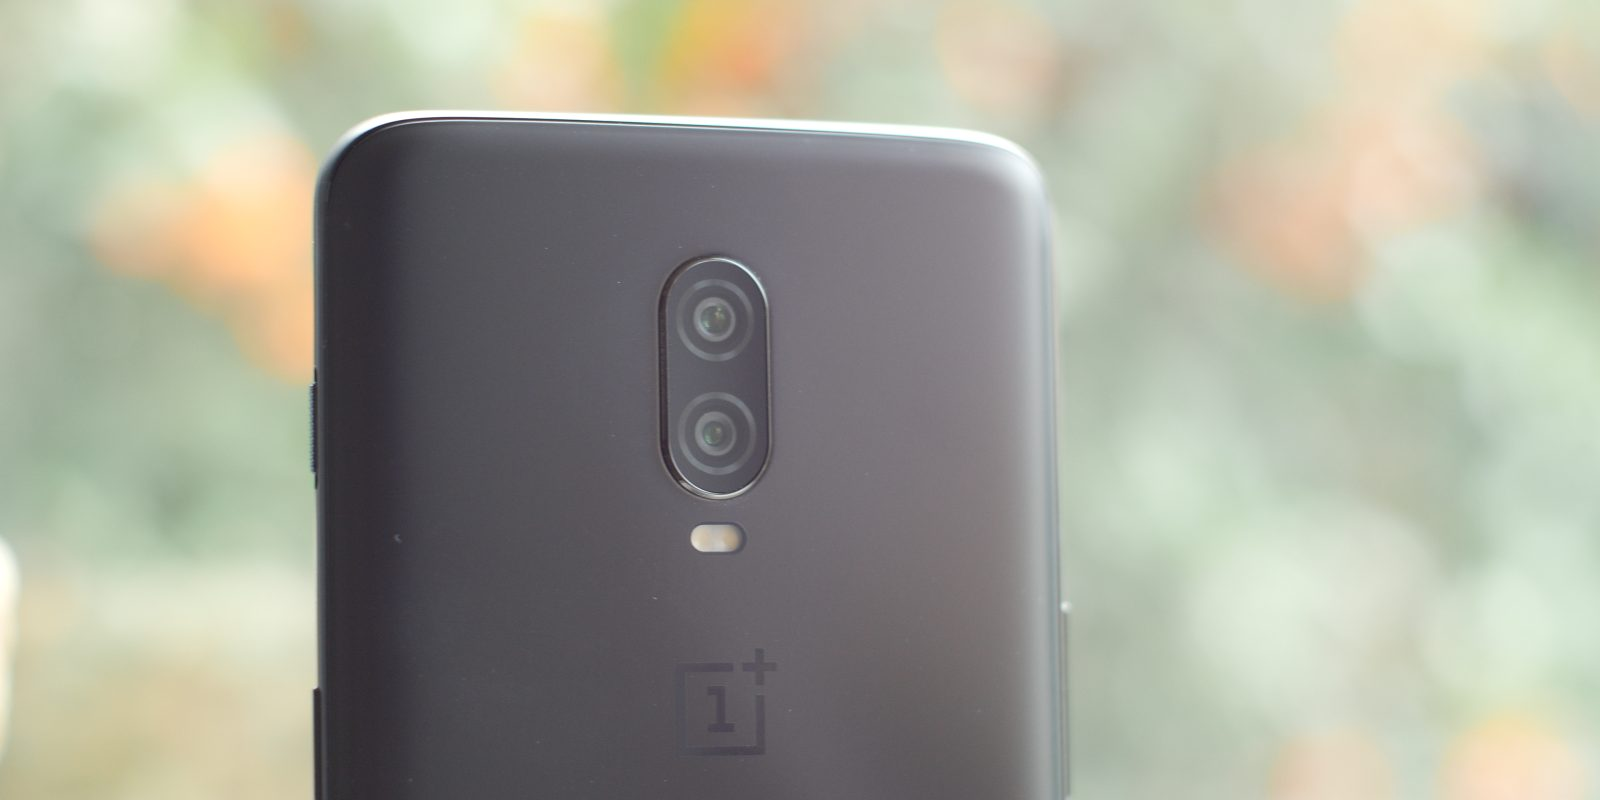 OnePlus 7 Pro camera samples: 3x zoom, HDR improvement - 9to5Google